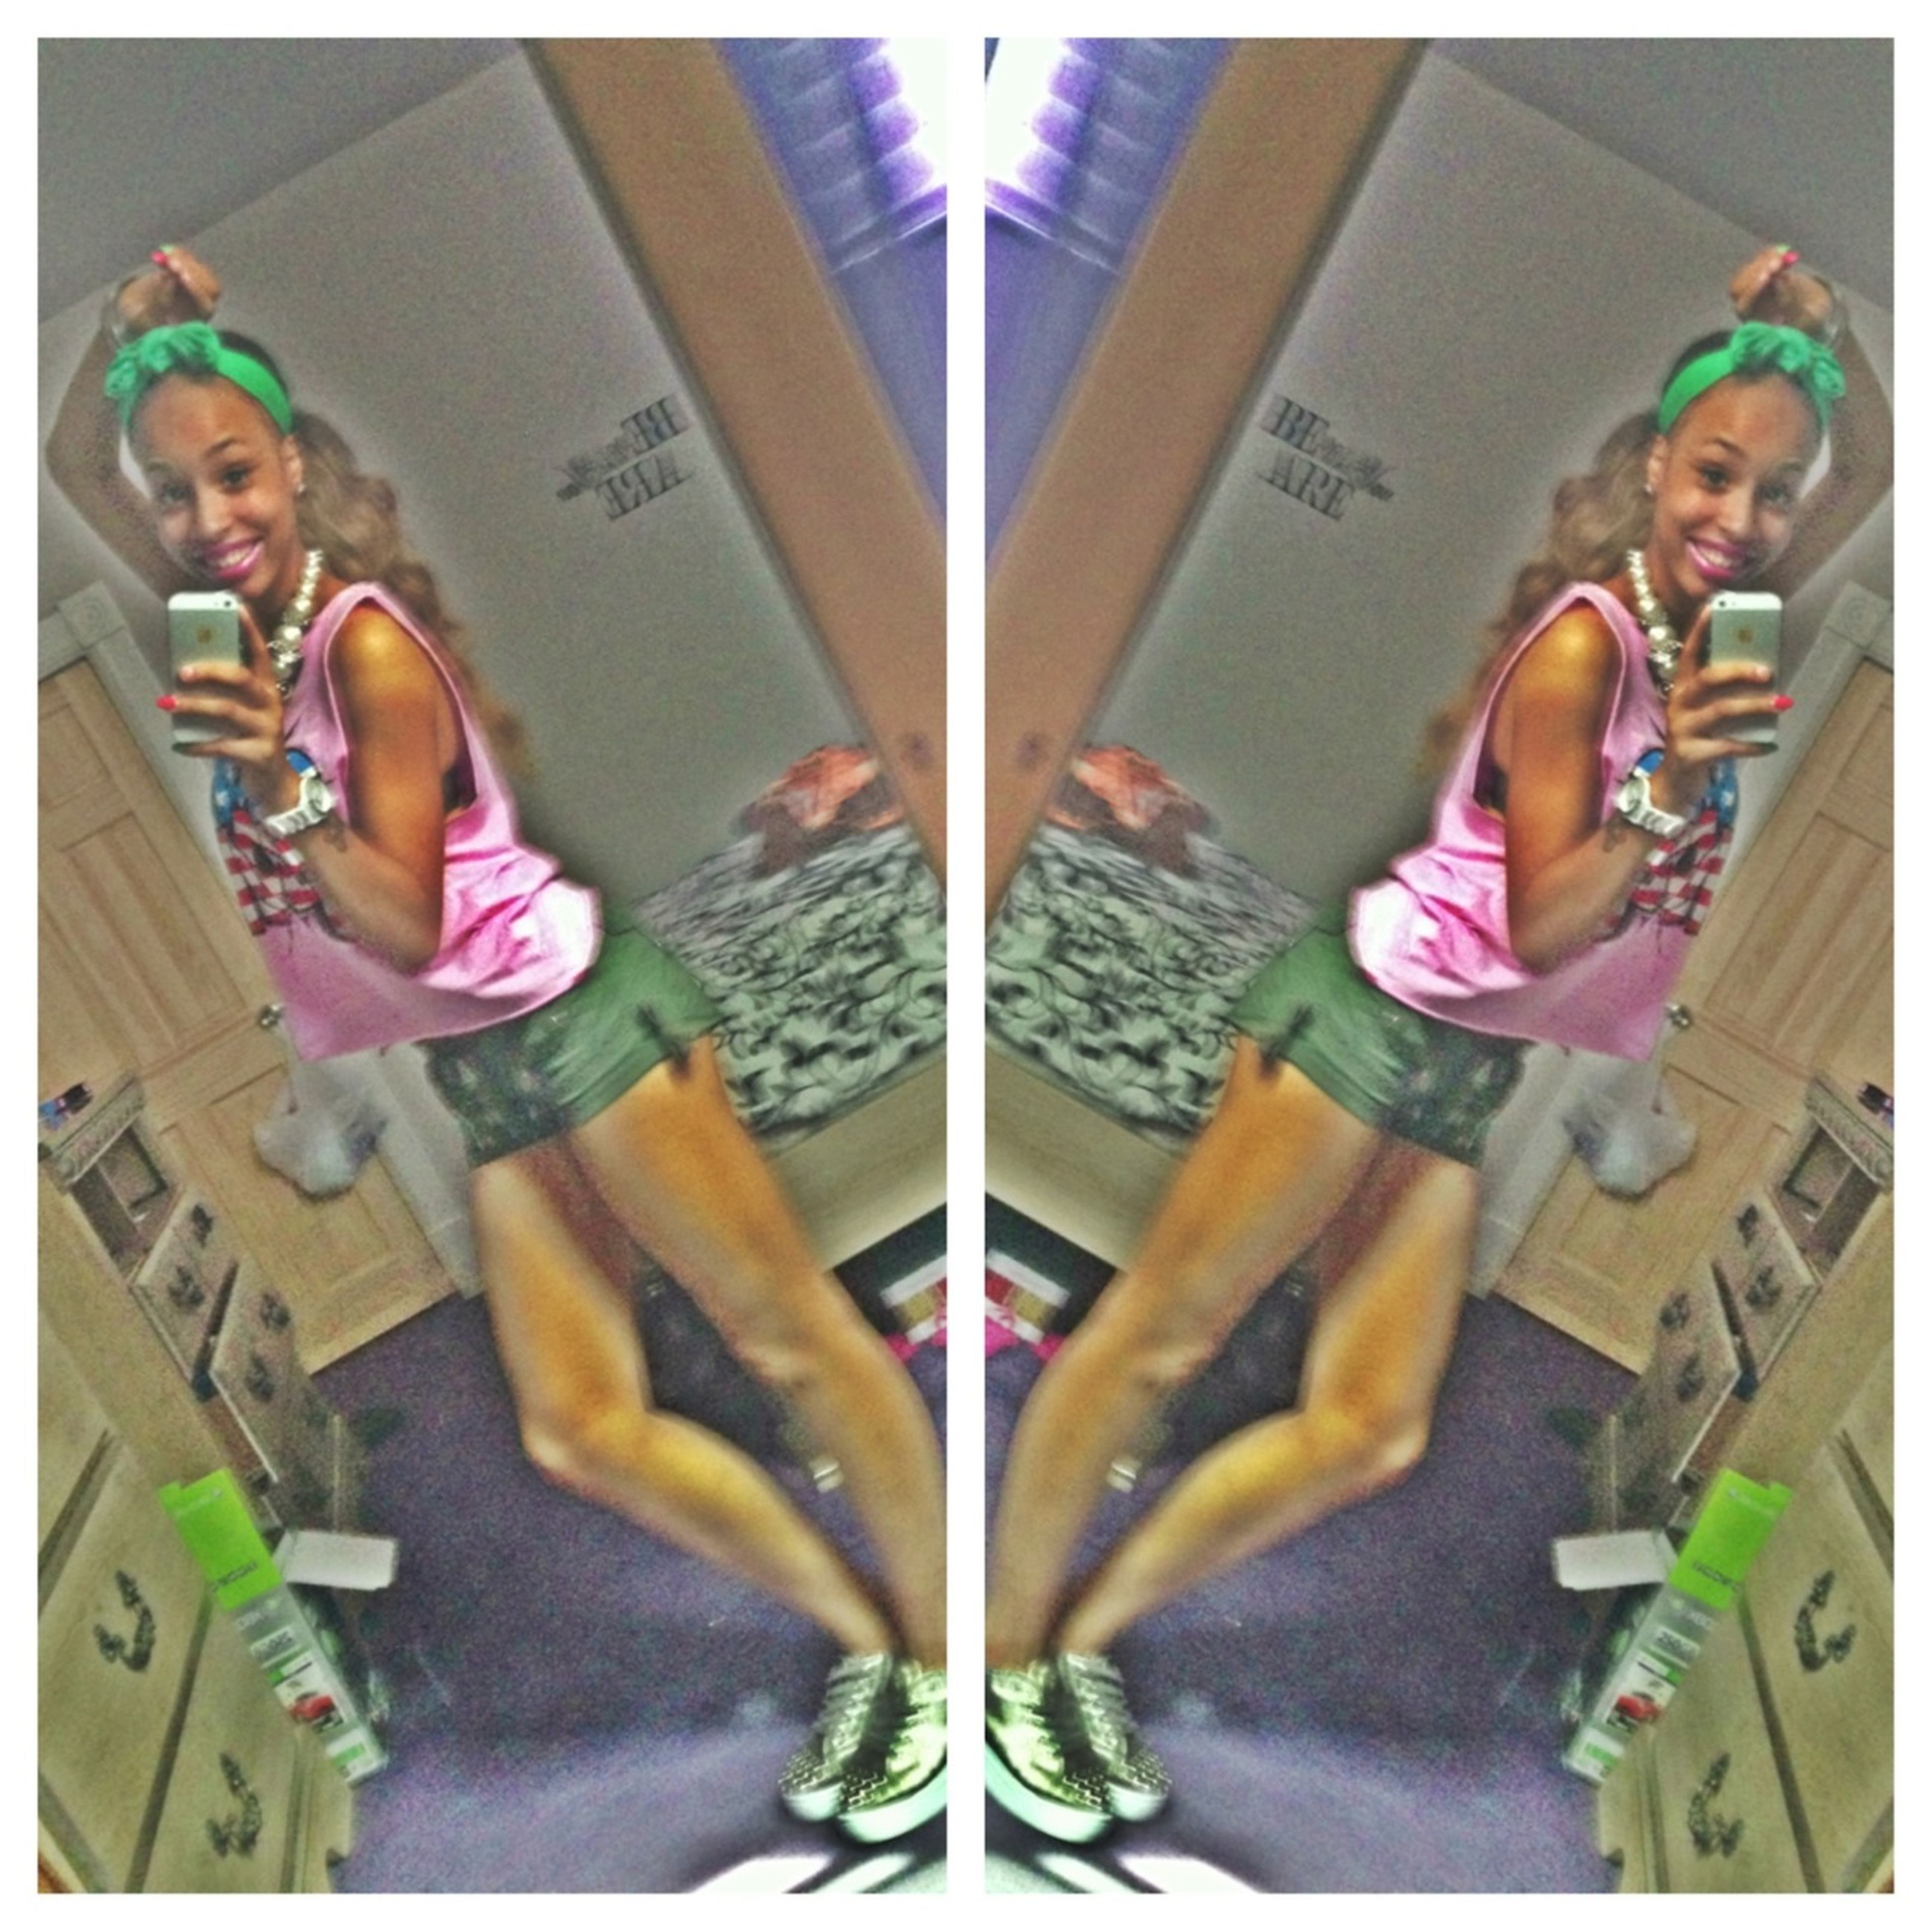 These Hoes Aint Got Nothing On Her, He Fck Wit Her Cause She Very Loyal